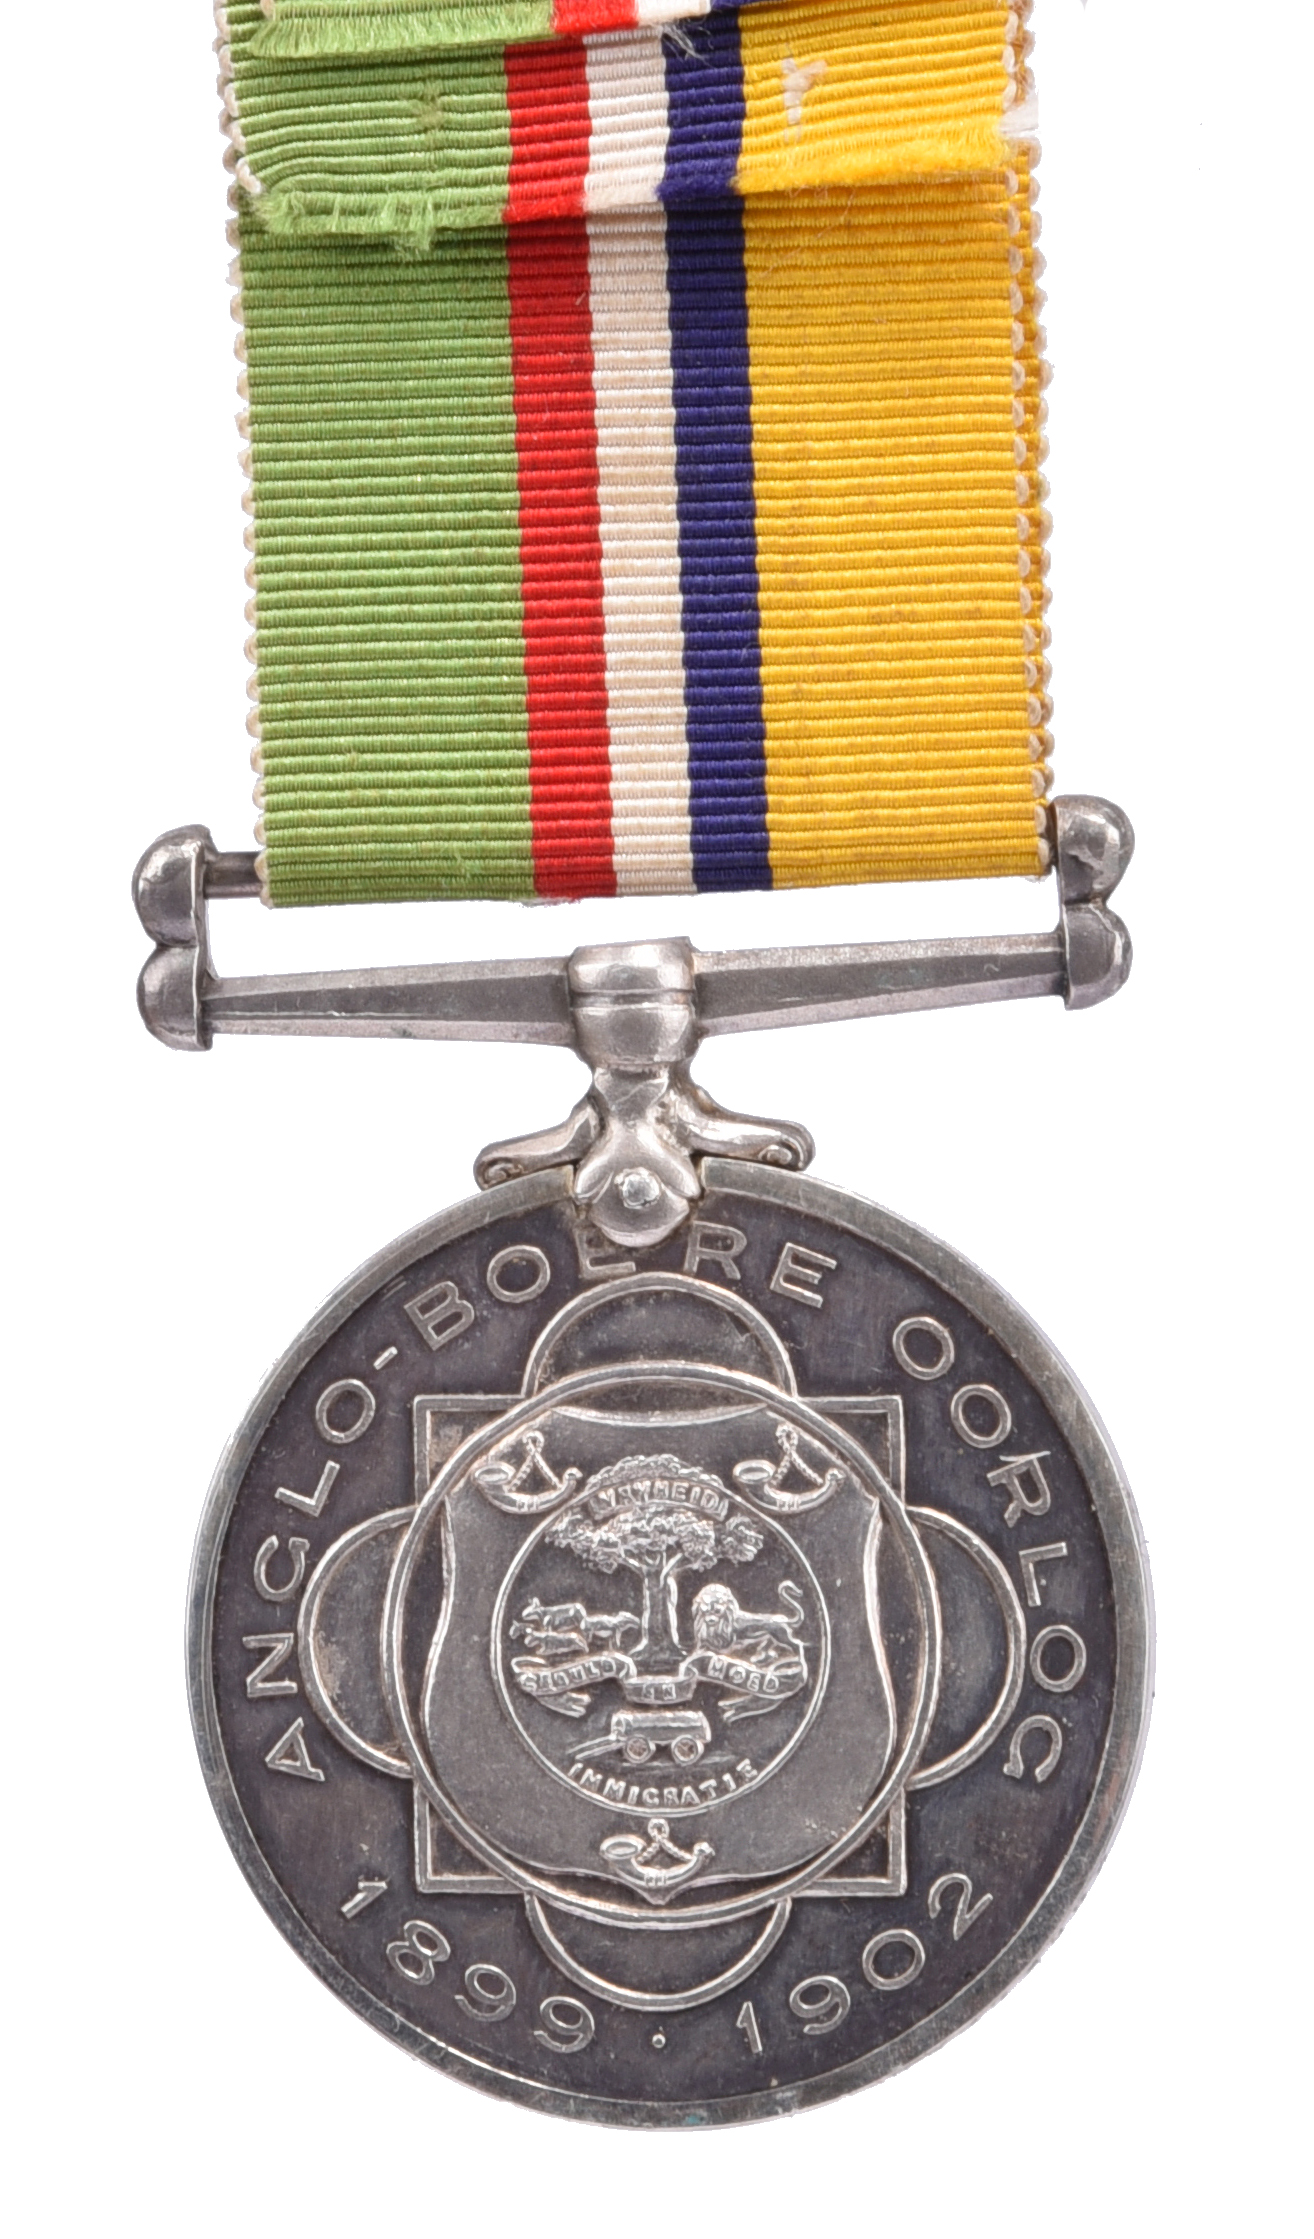 South Africa: Anglo-Boere Oorlog Medal, KORPORAAL A.C. NUNES., good extremely fine. - Image 2 of 2